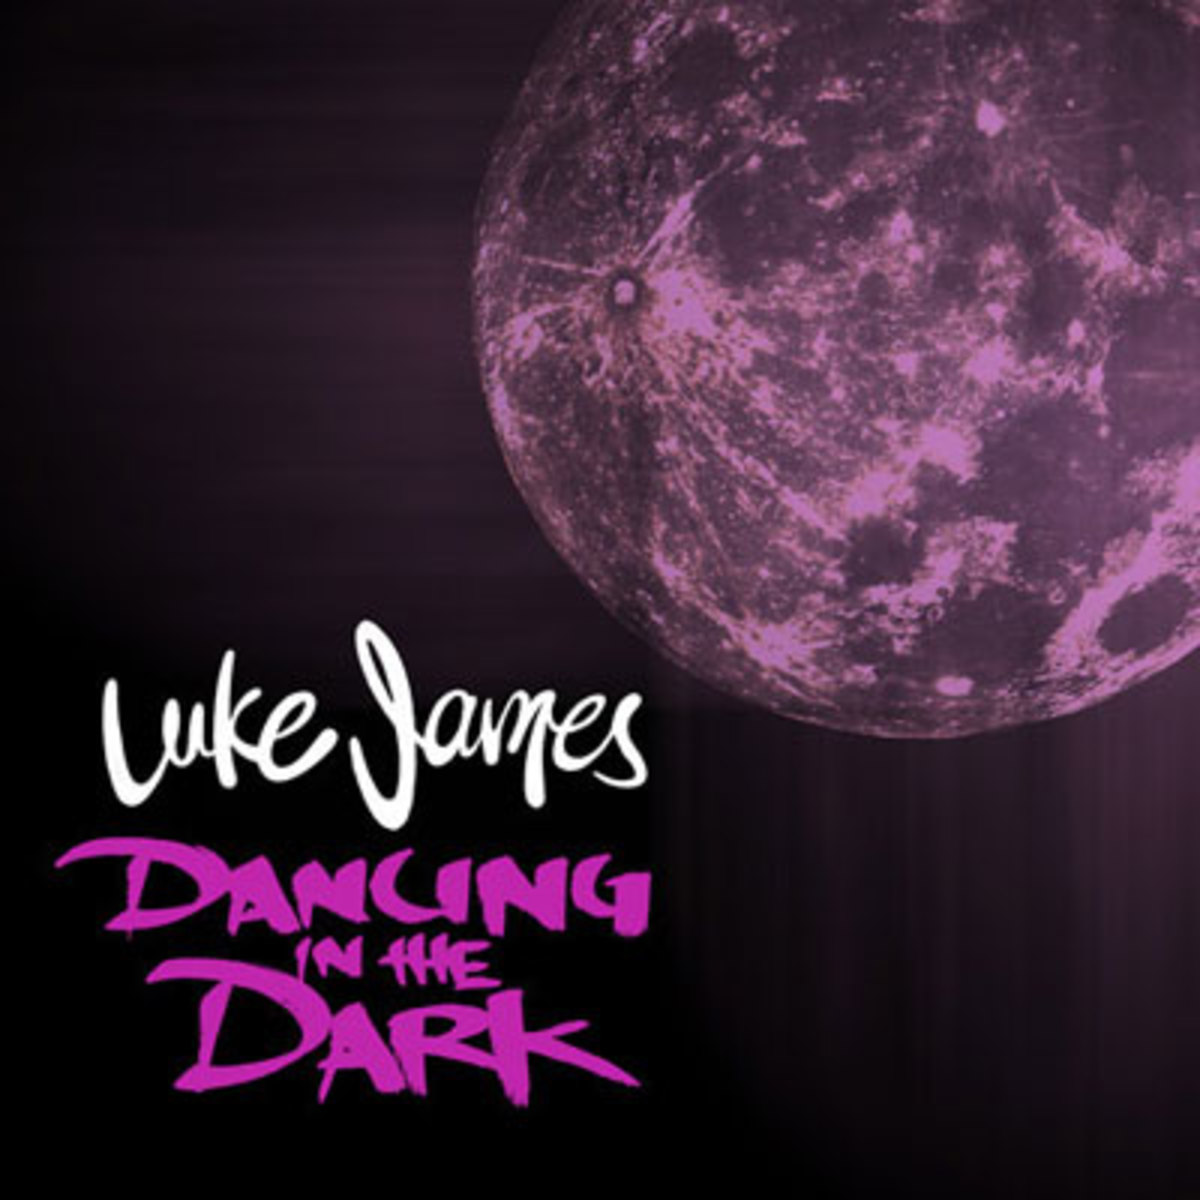 lukejames-dancinginthedark.jpg